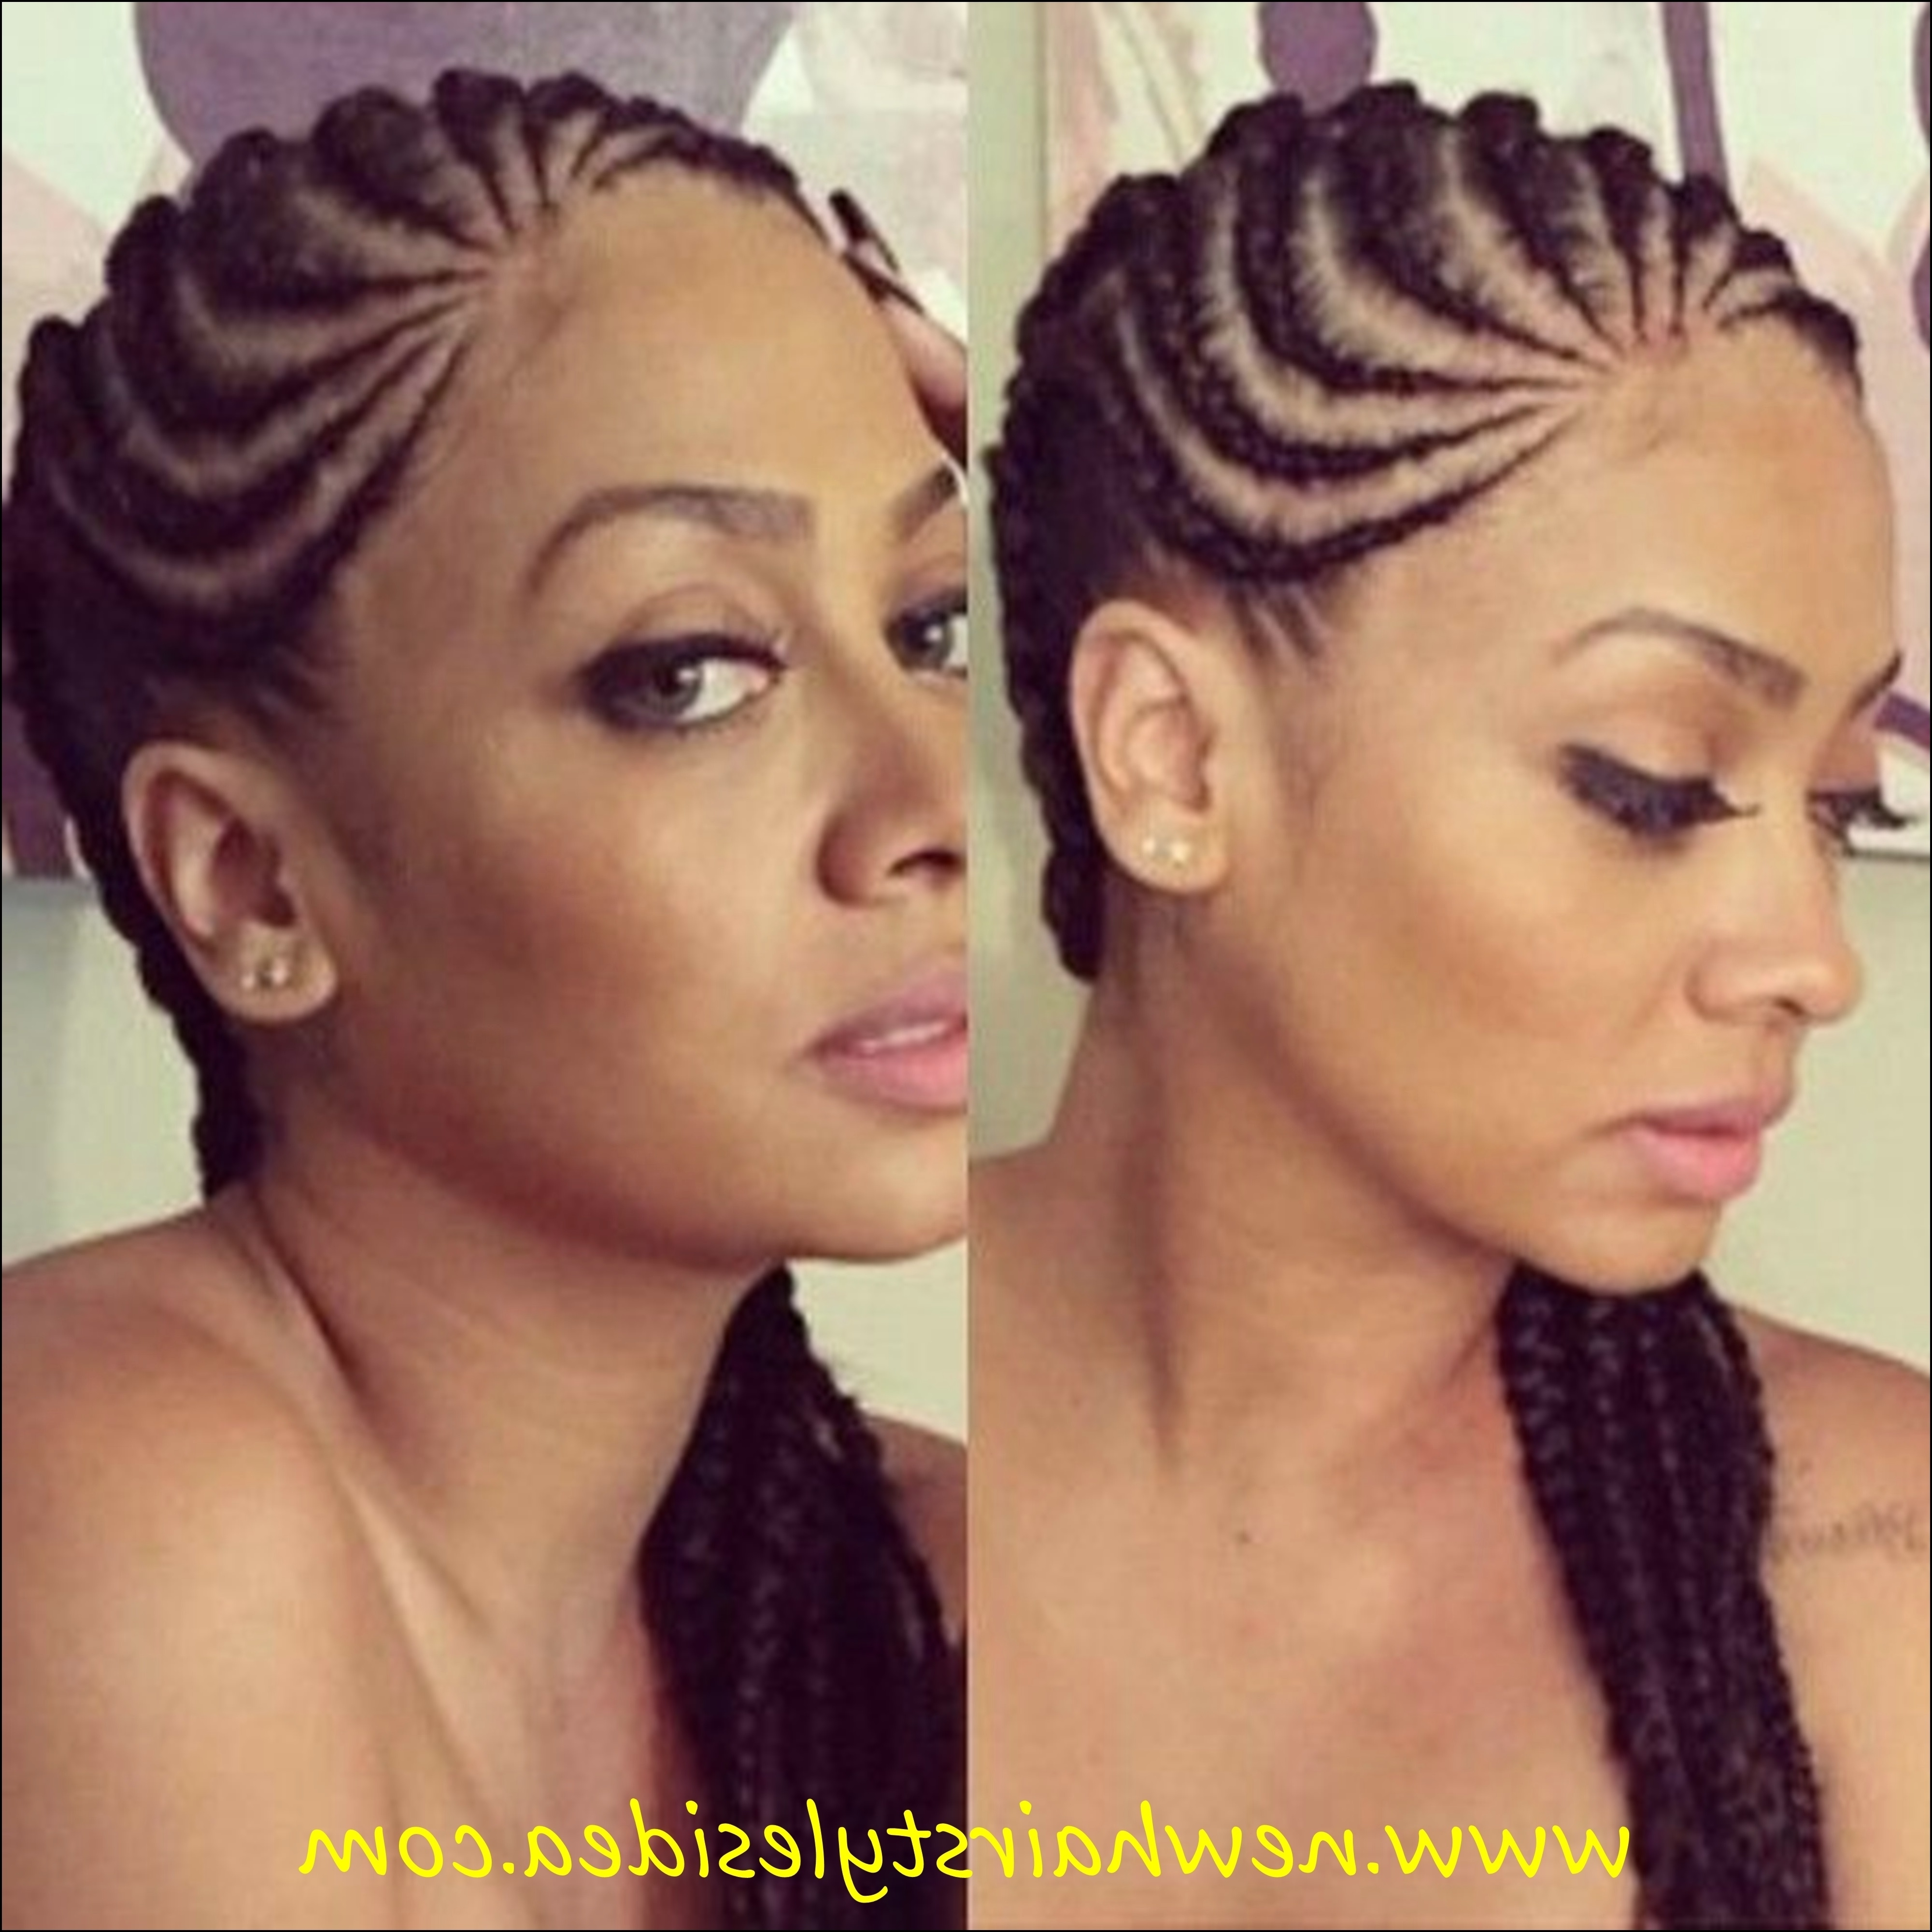 Cornrows Styles For Oval Faces Cornrow Hairstyles For From Modern With Regard To Recent Modern Cornrows Hairstyles (View 11 of 15)